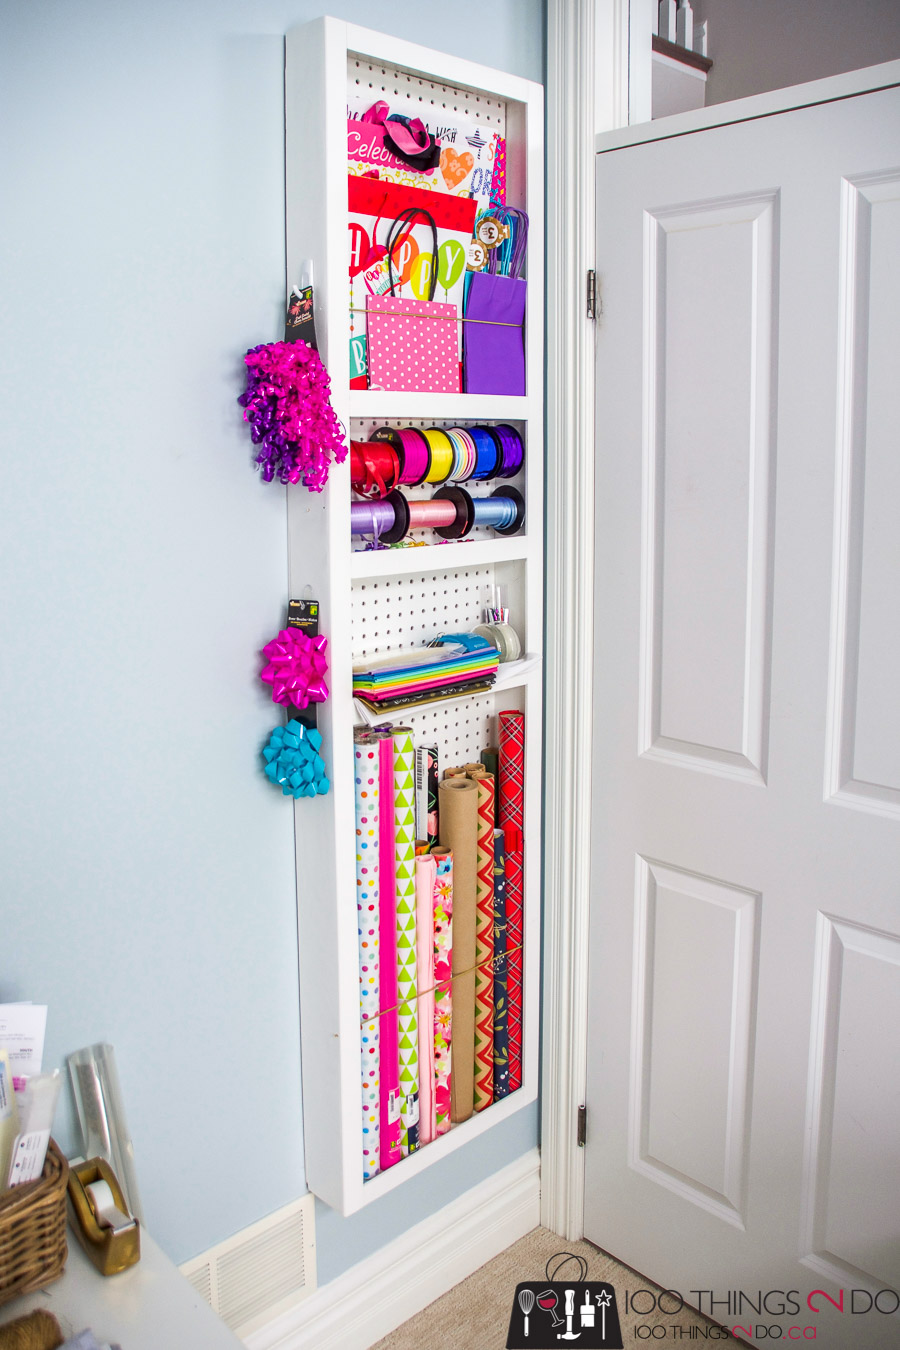 Behind-the-door-storage, behind the door storage rack, DIY door storage, gift wrap storage, wrapping paper storage, wrapping paper organization, organizing gift wrap